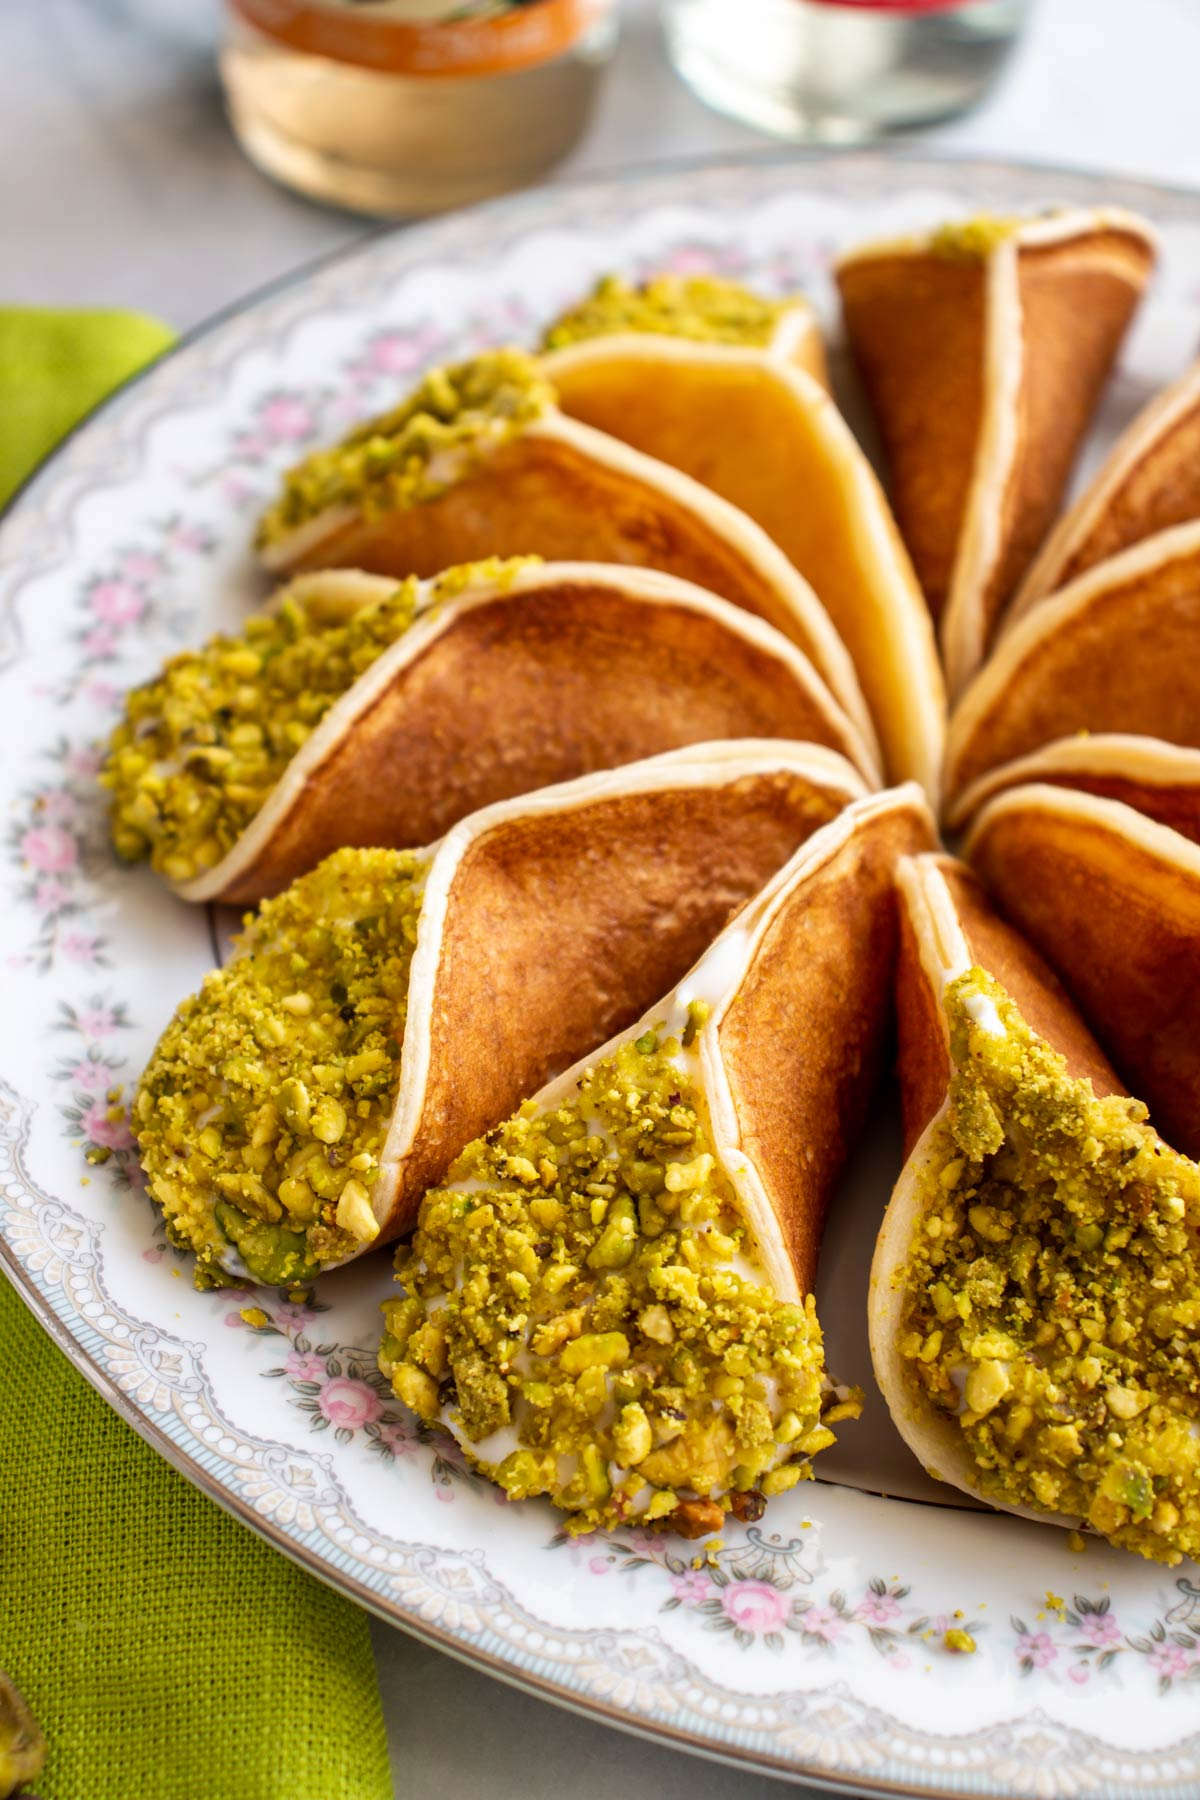 Closeup of atayef pancakes with crushed pistachios fanned out on a floral china plate.